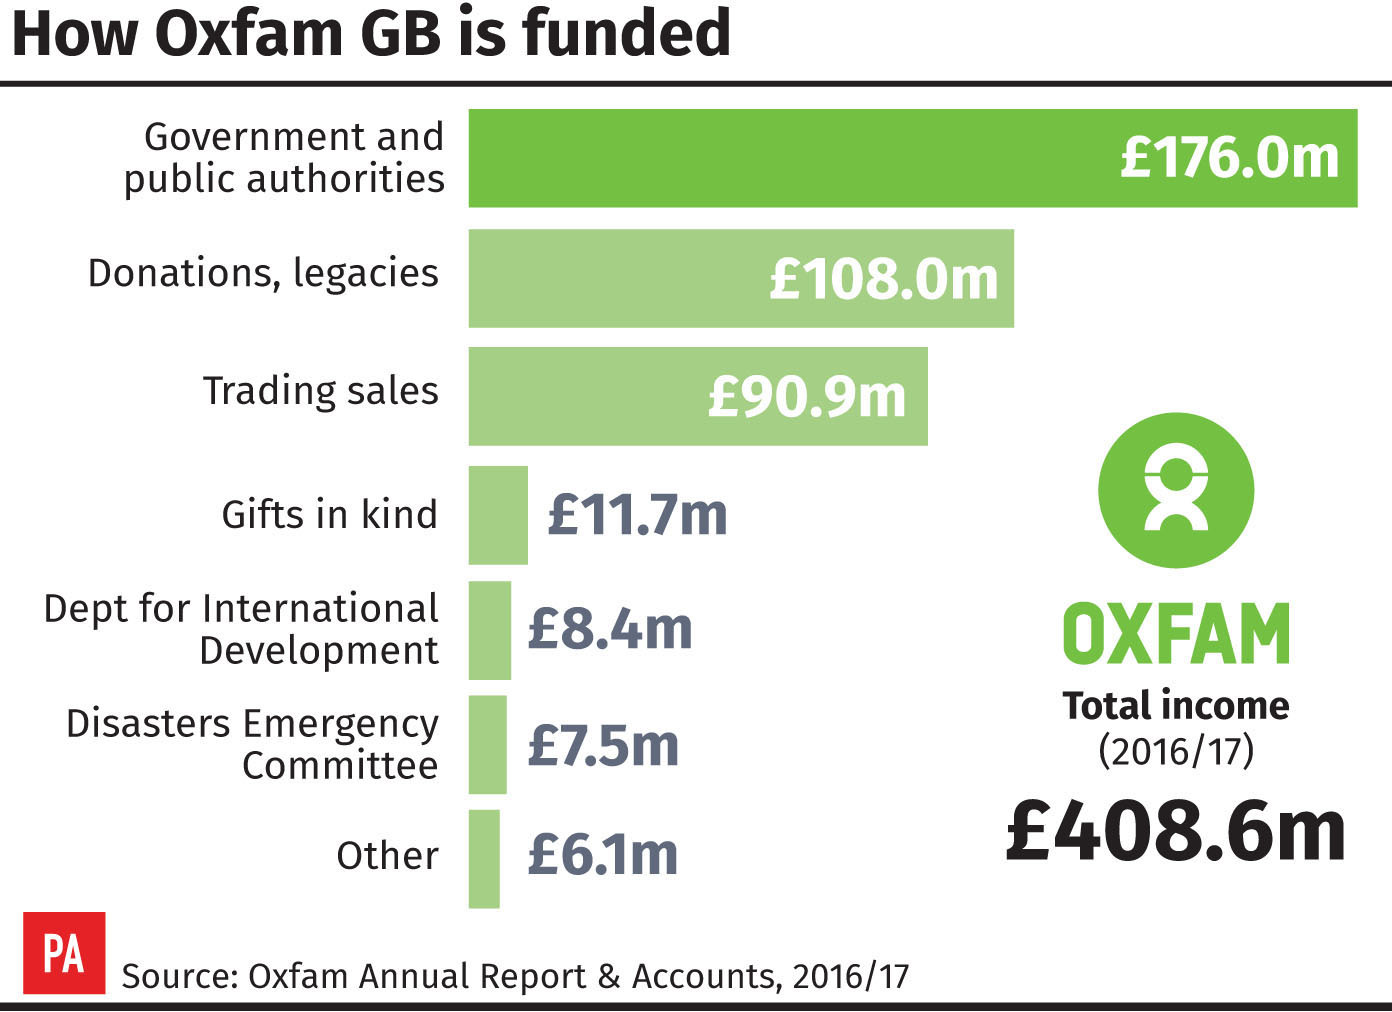 How Oxfam GB is funded (PA Graphics)